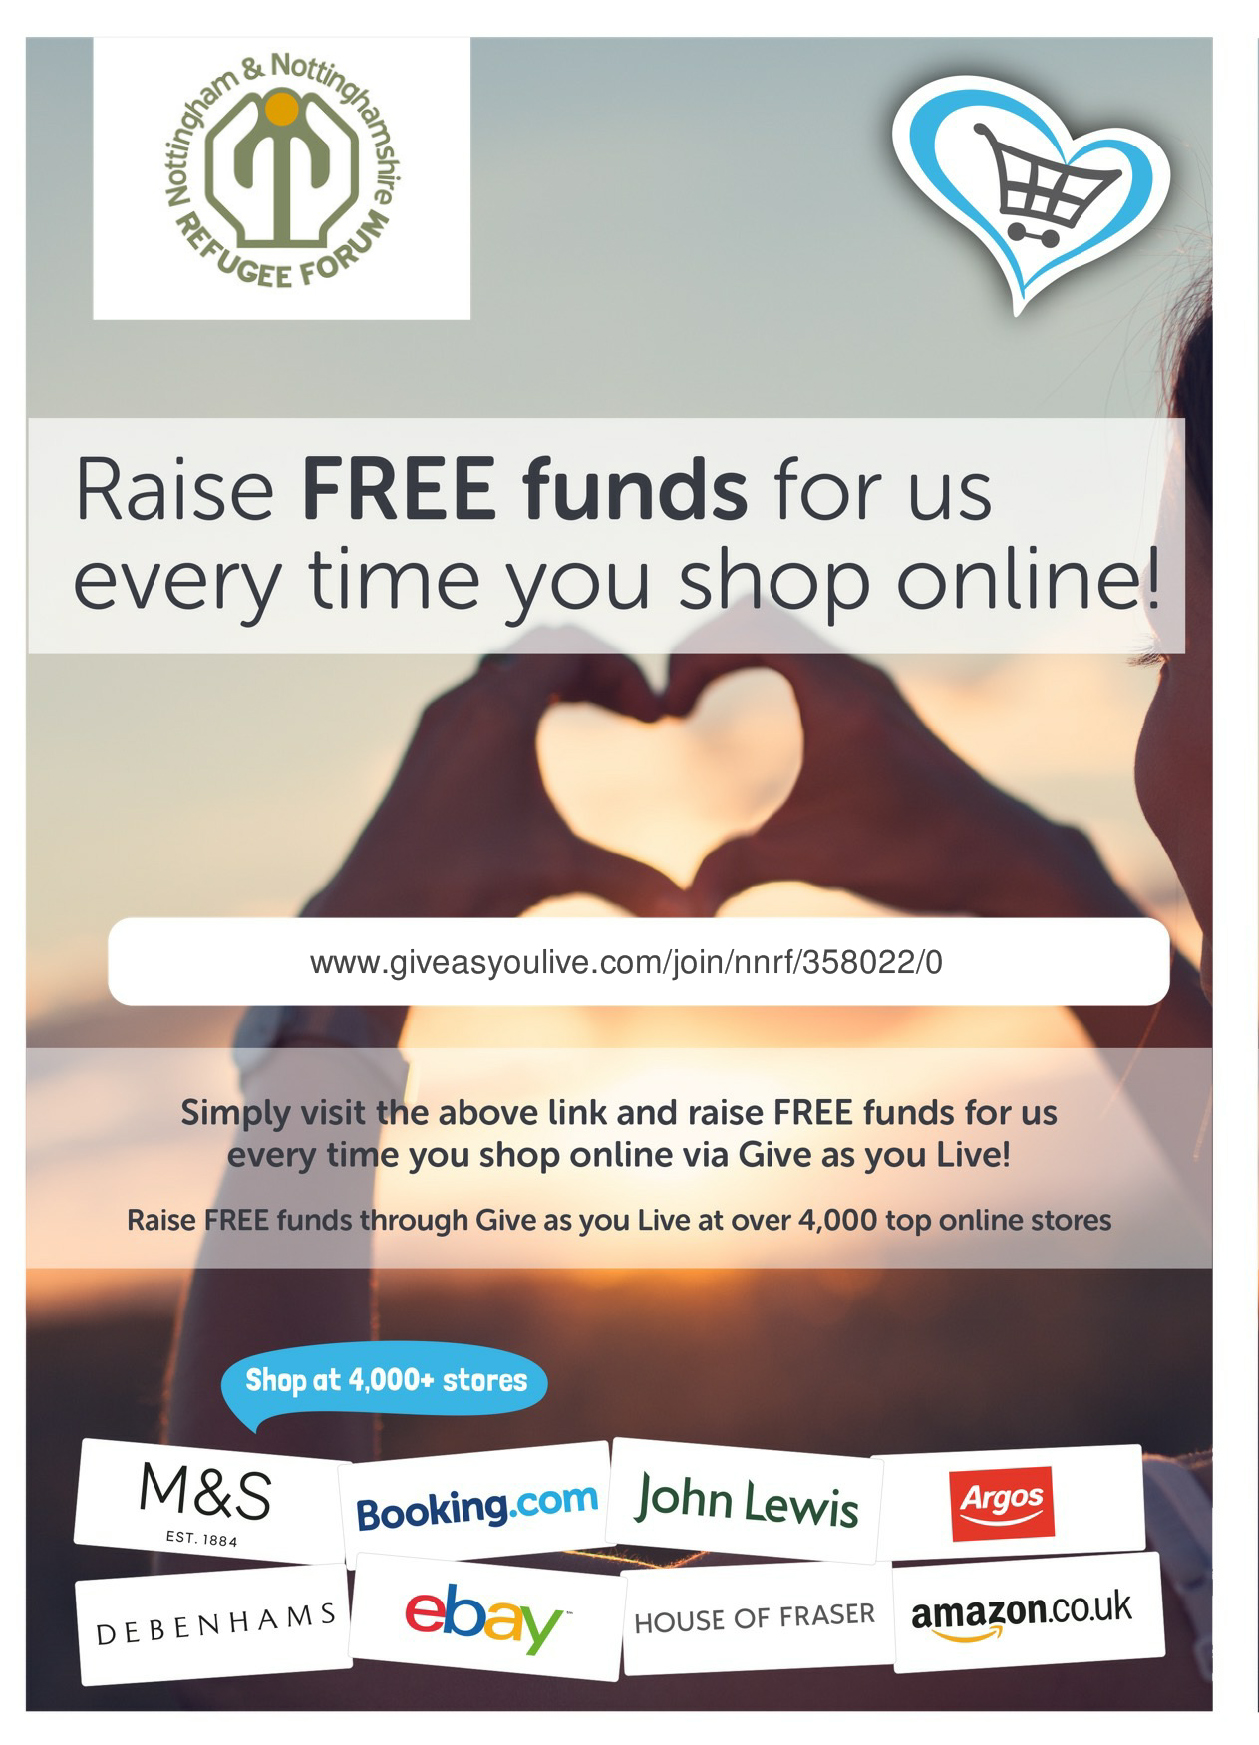 Find out how you can 'Give as You Live'